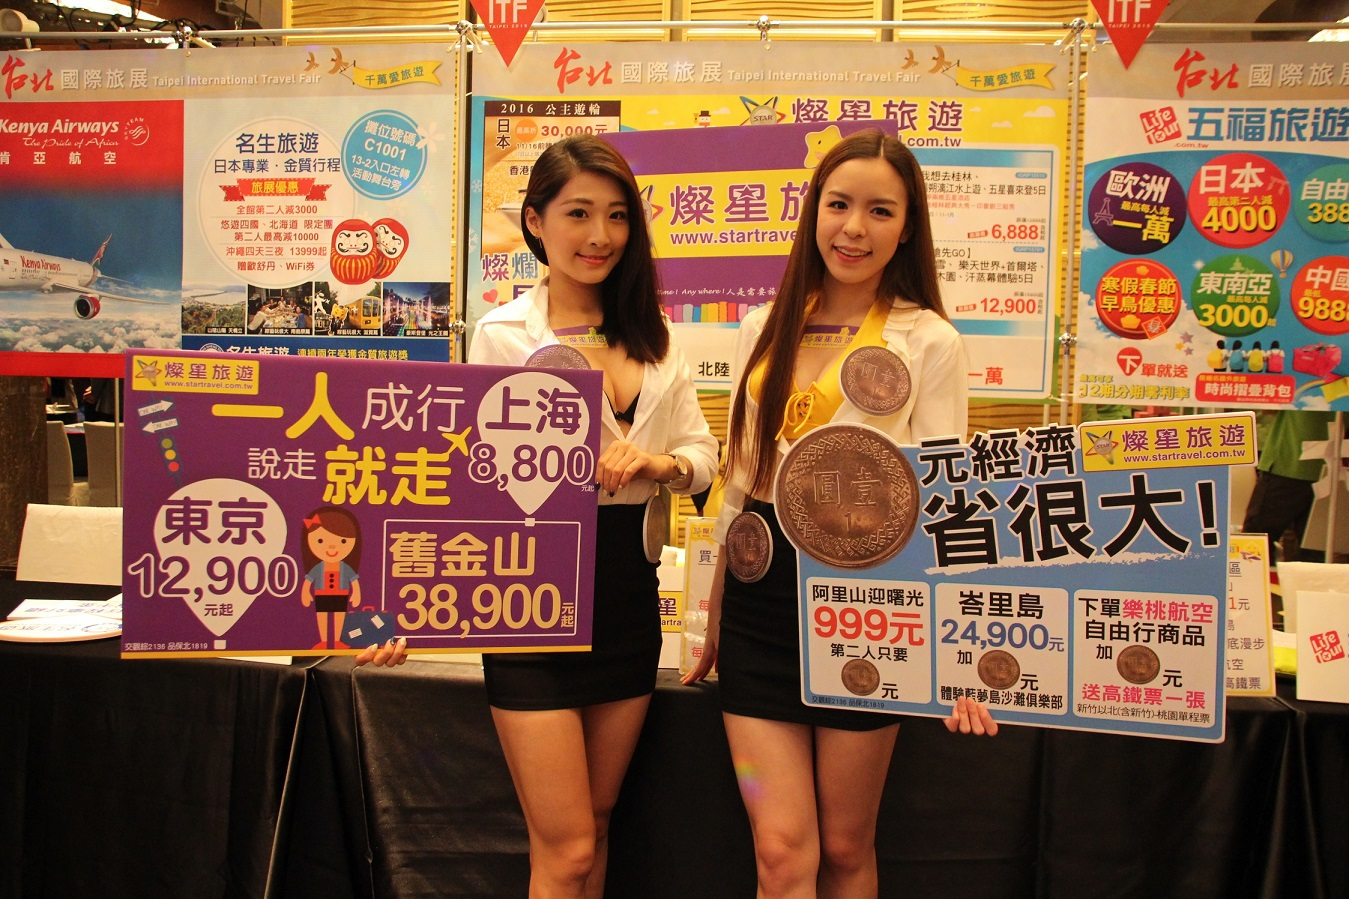 Tourists to Taiwan expects to hit 10 million mark by year-end